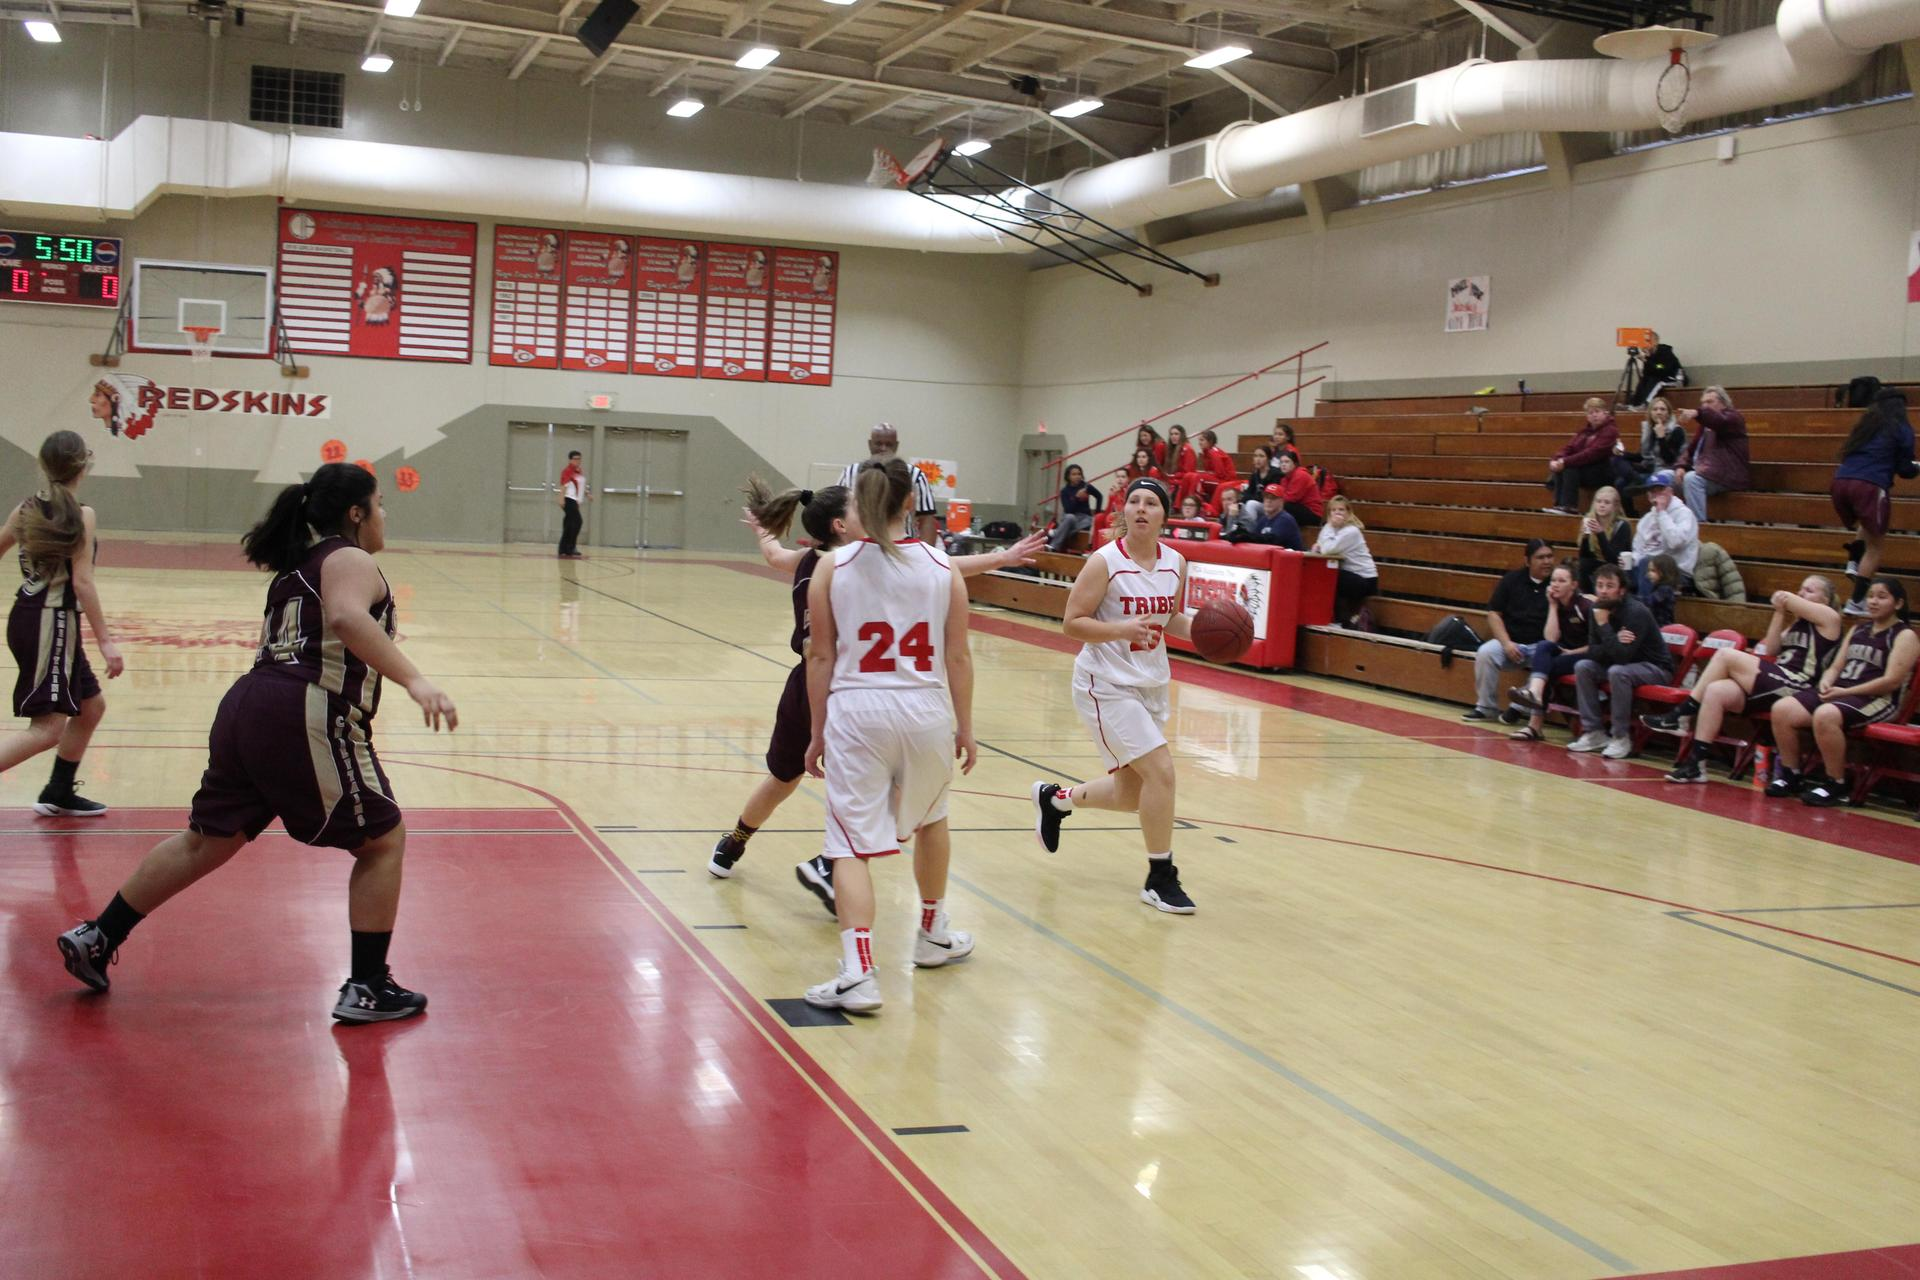 JV girls playing basketball against Sierra